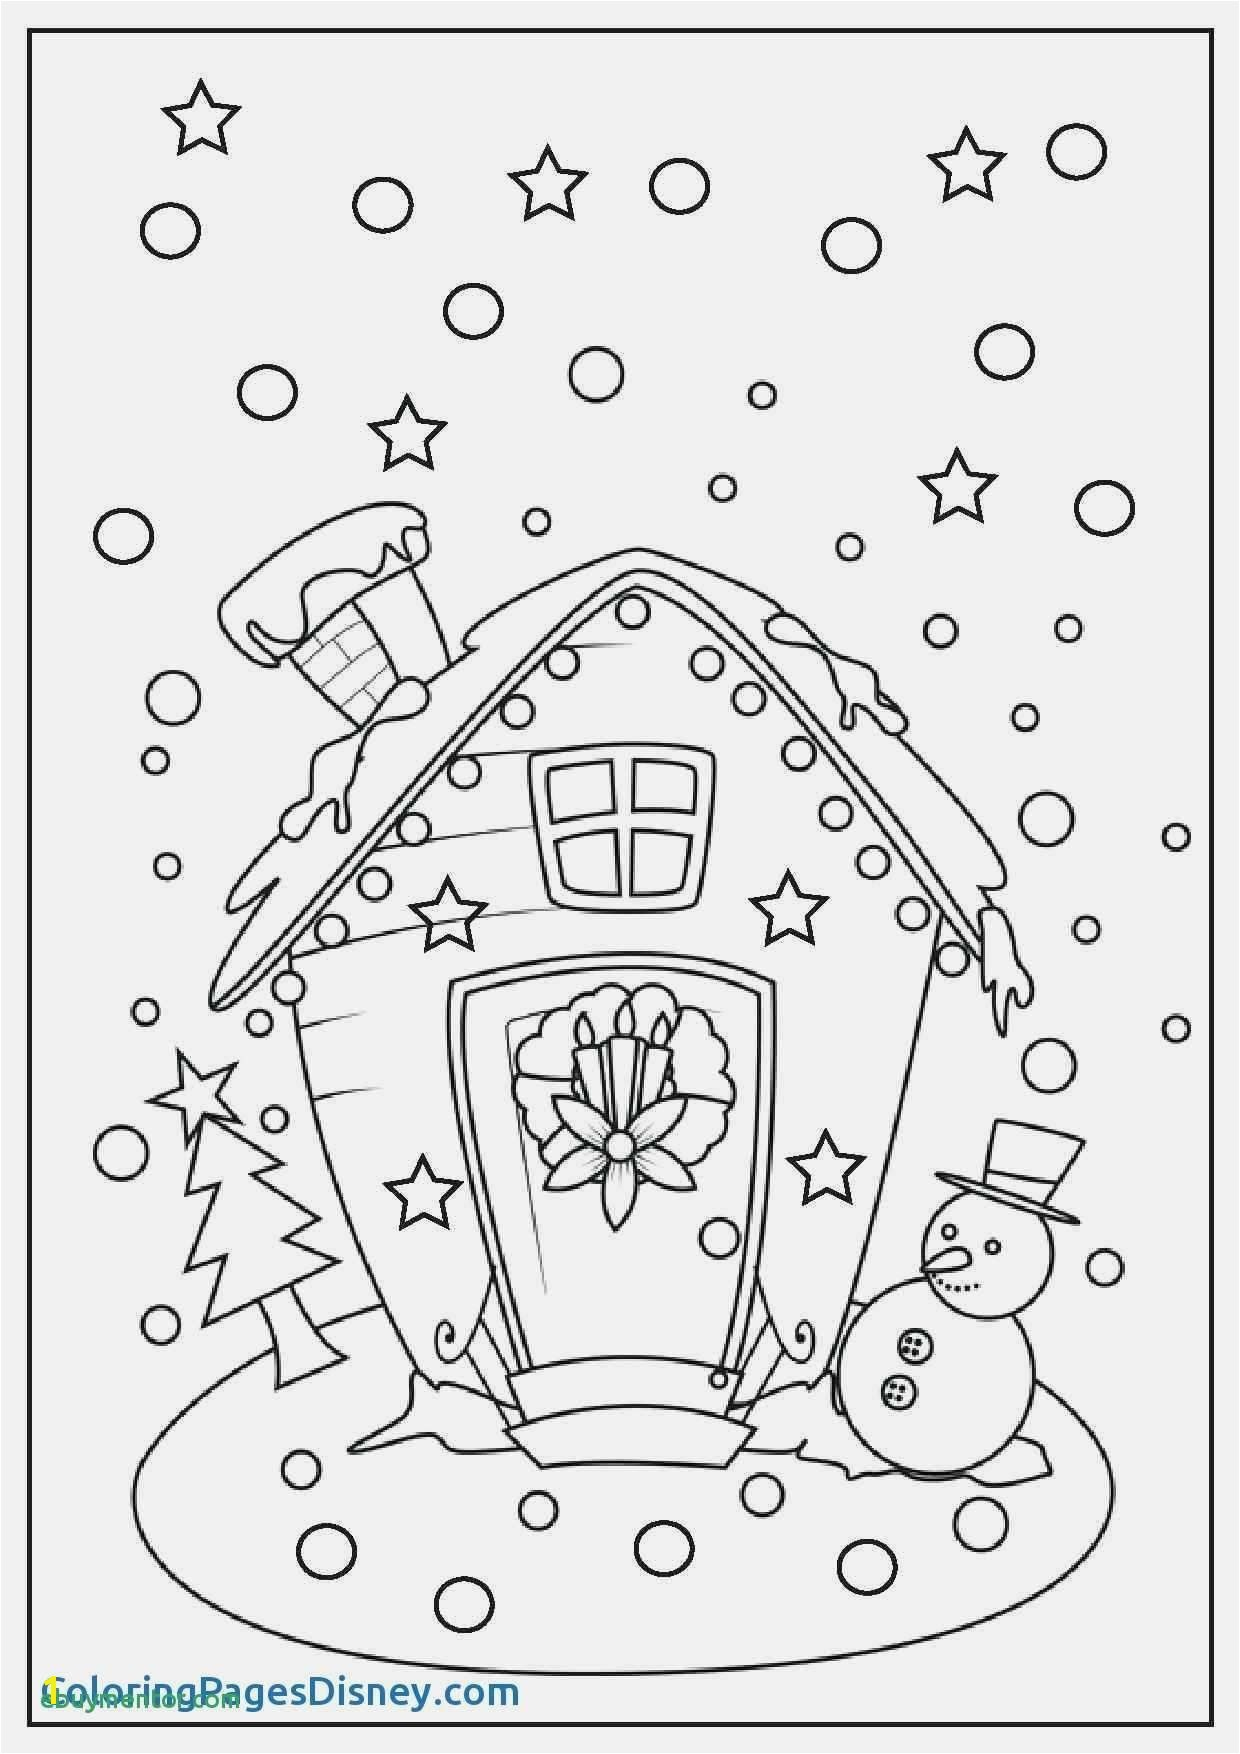 Christmas Coloring Pages Free Jesus Christmas Coloring Pages Free N Fun Cool Coloring Printables 0d